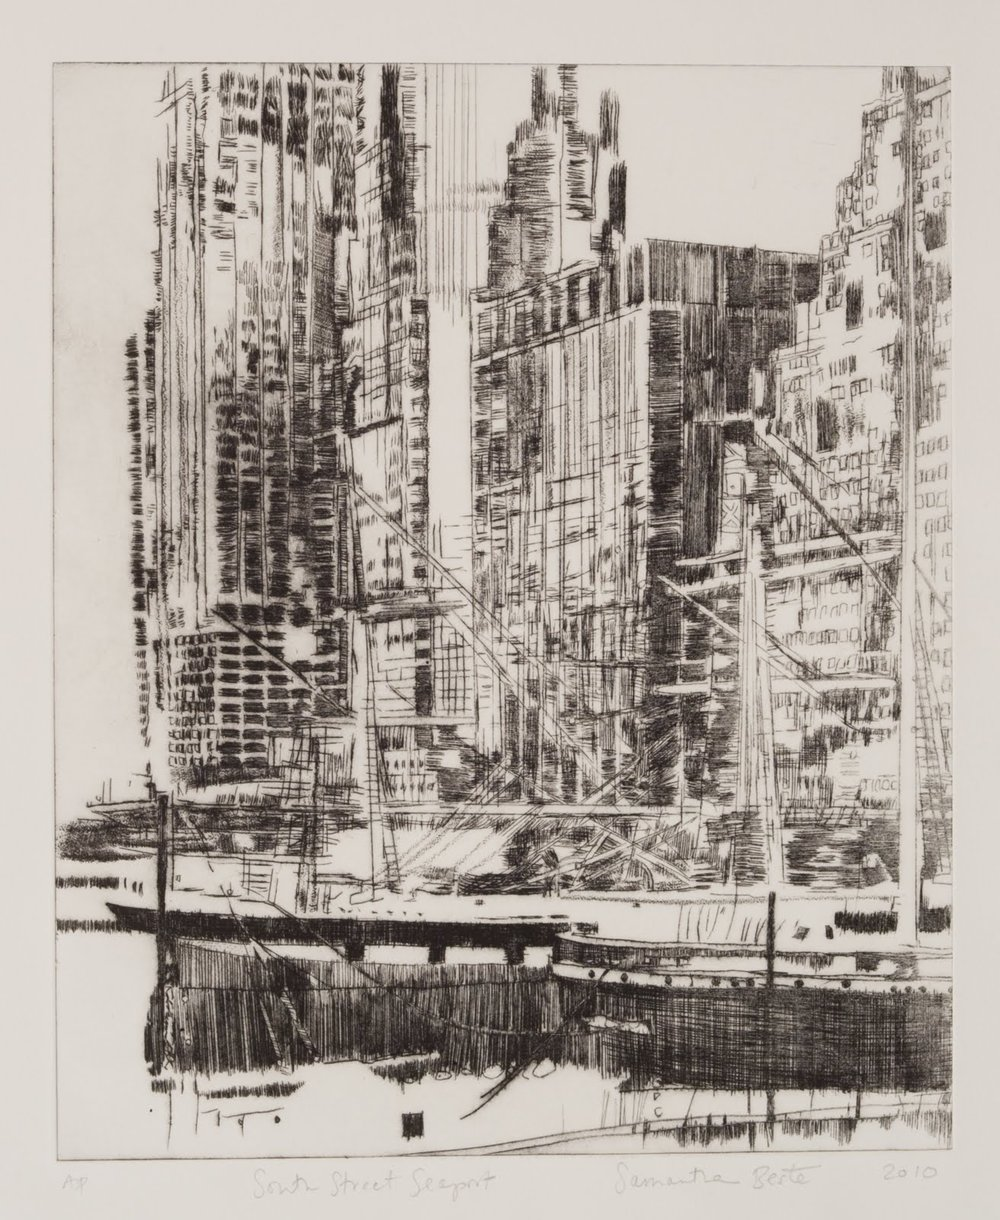 """"""" South Street Seaport"""", drypoint etching, 14 x 12 in."""